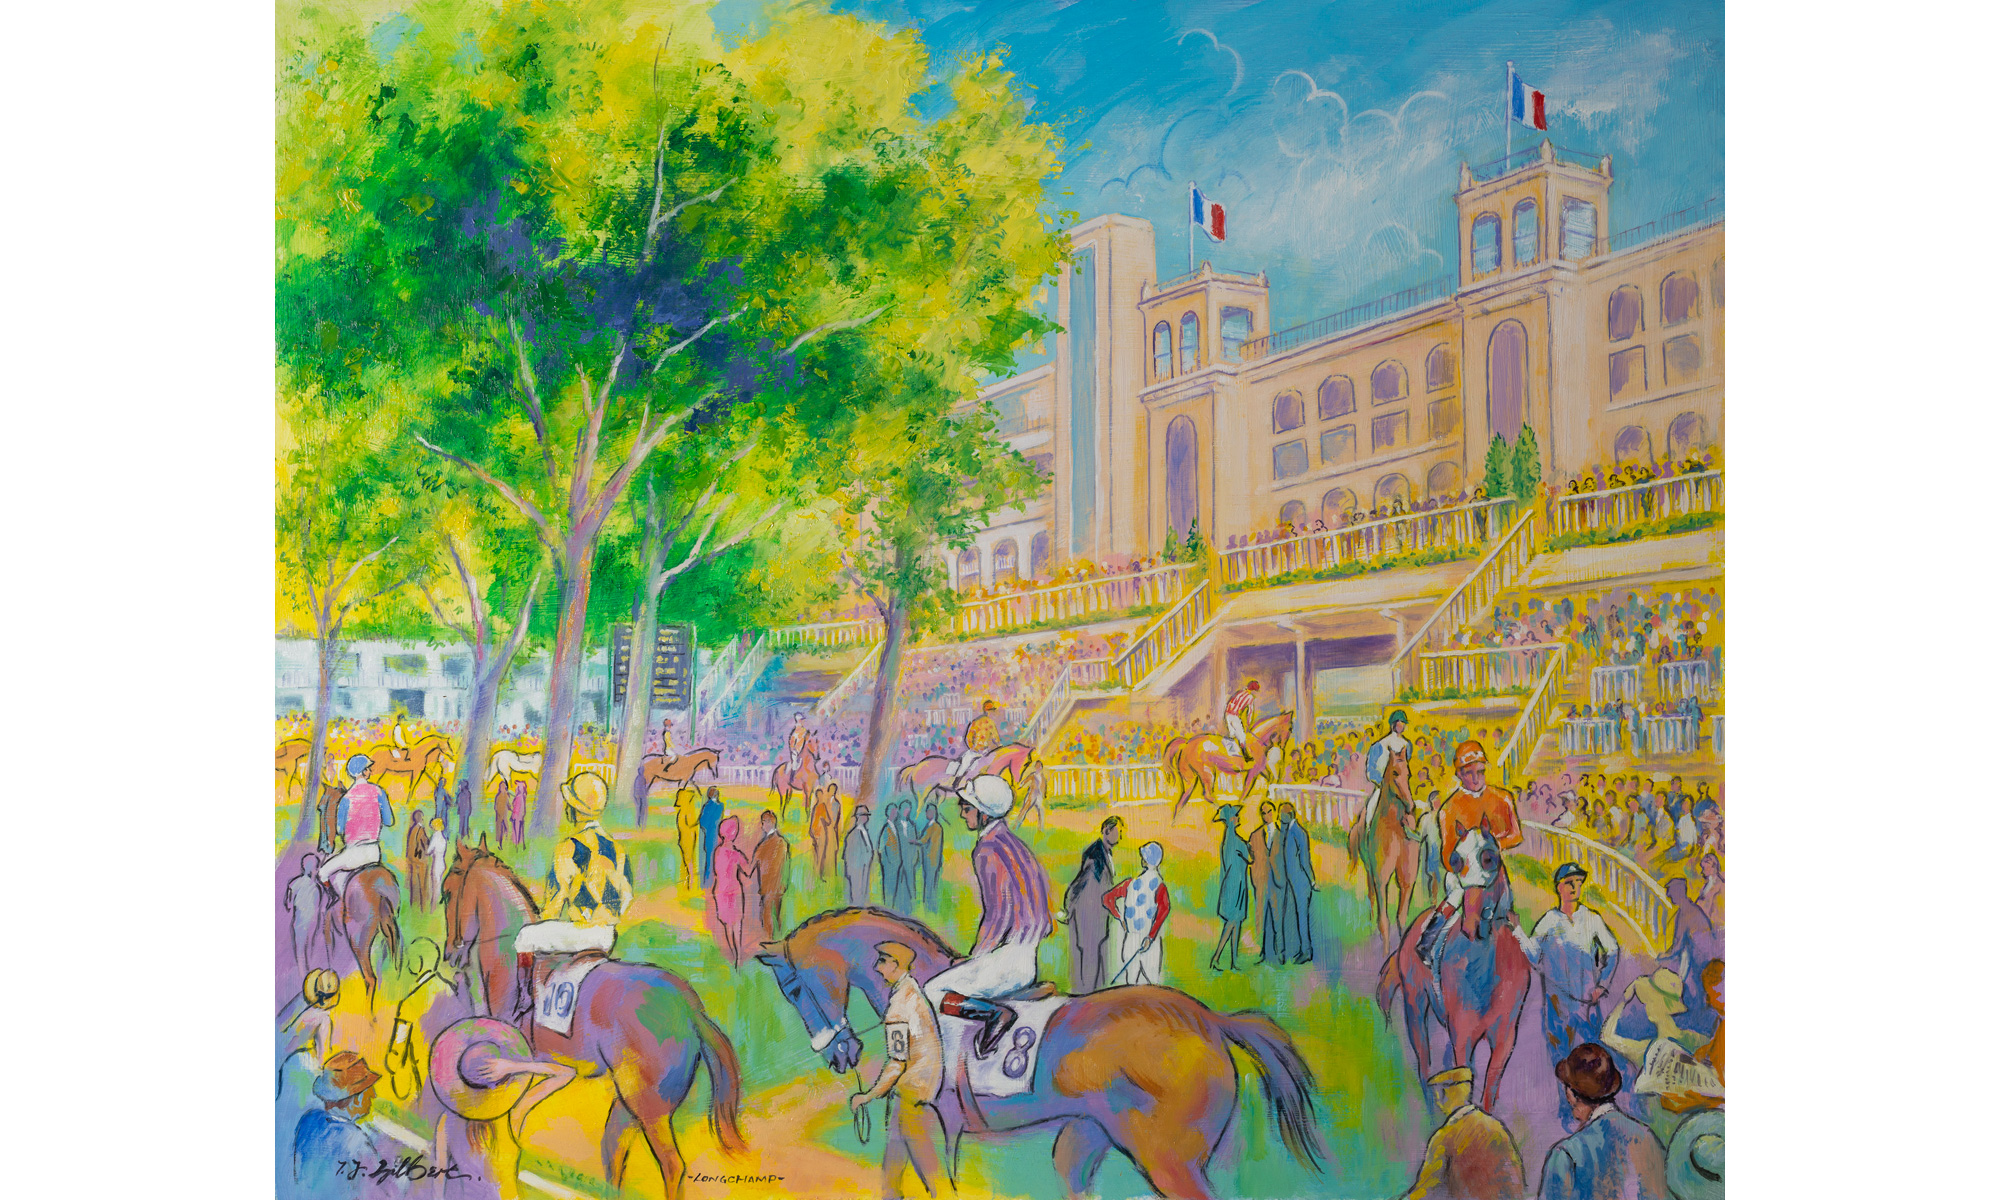 Longchamp Racing Painting by Terence J Gilbert Oil on Board